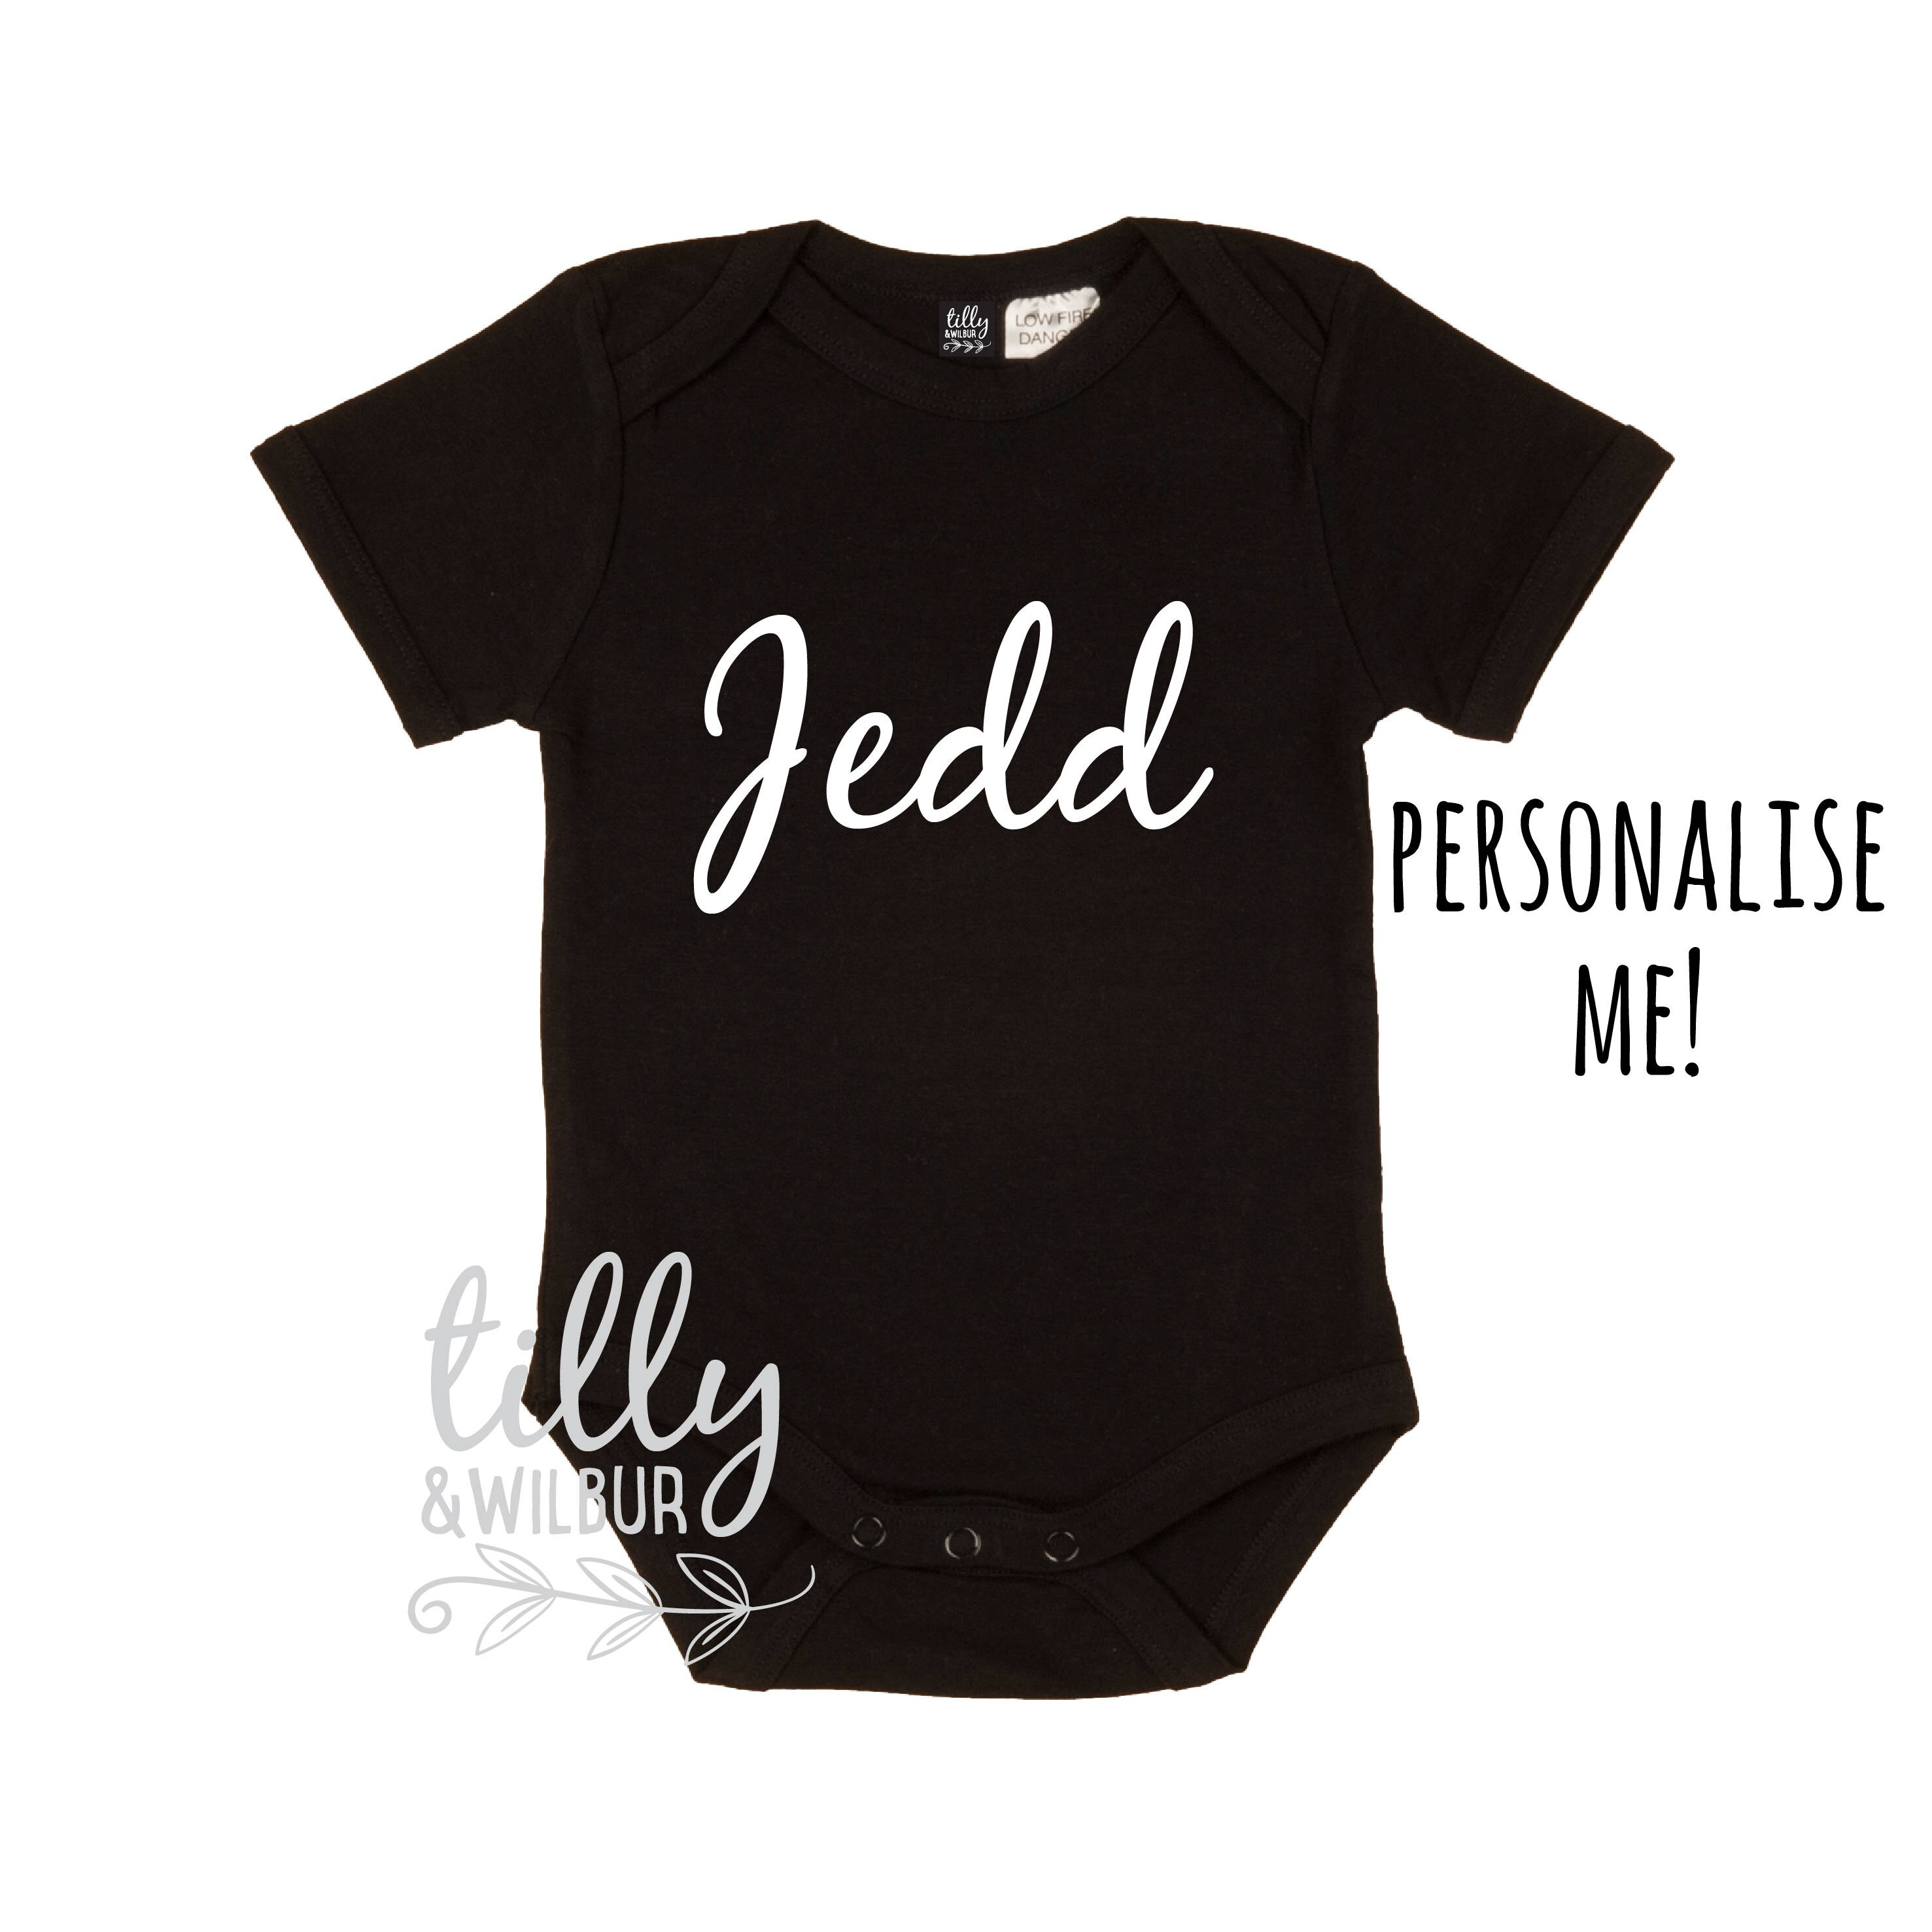 Tillywilbur personalised clothing gifts personalised baby bodysuit with your choice of name newborn baby gift new baby outfit negle Choice Image